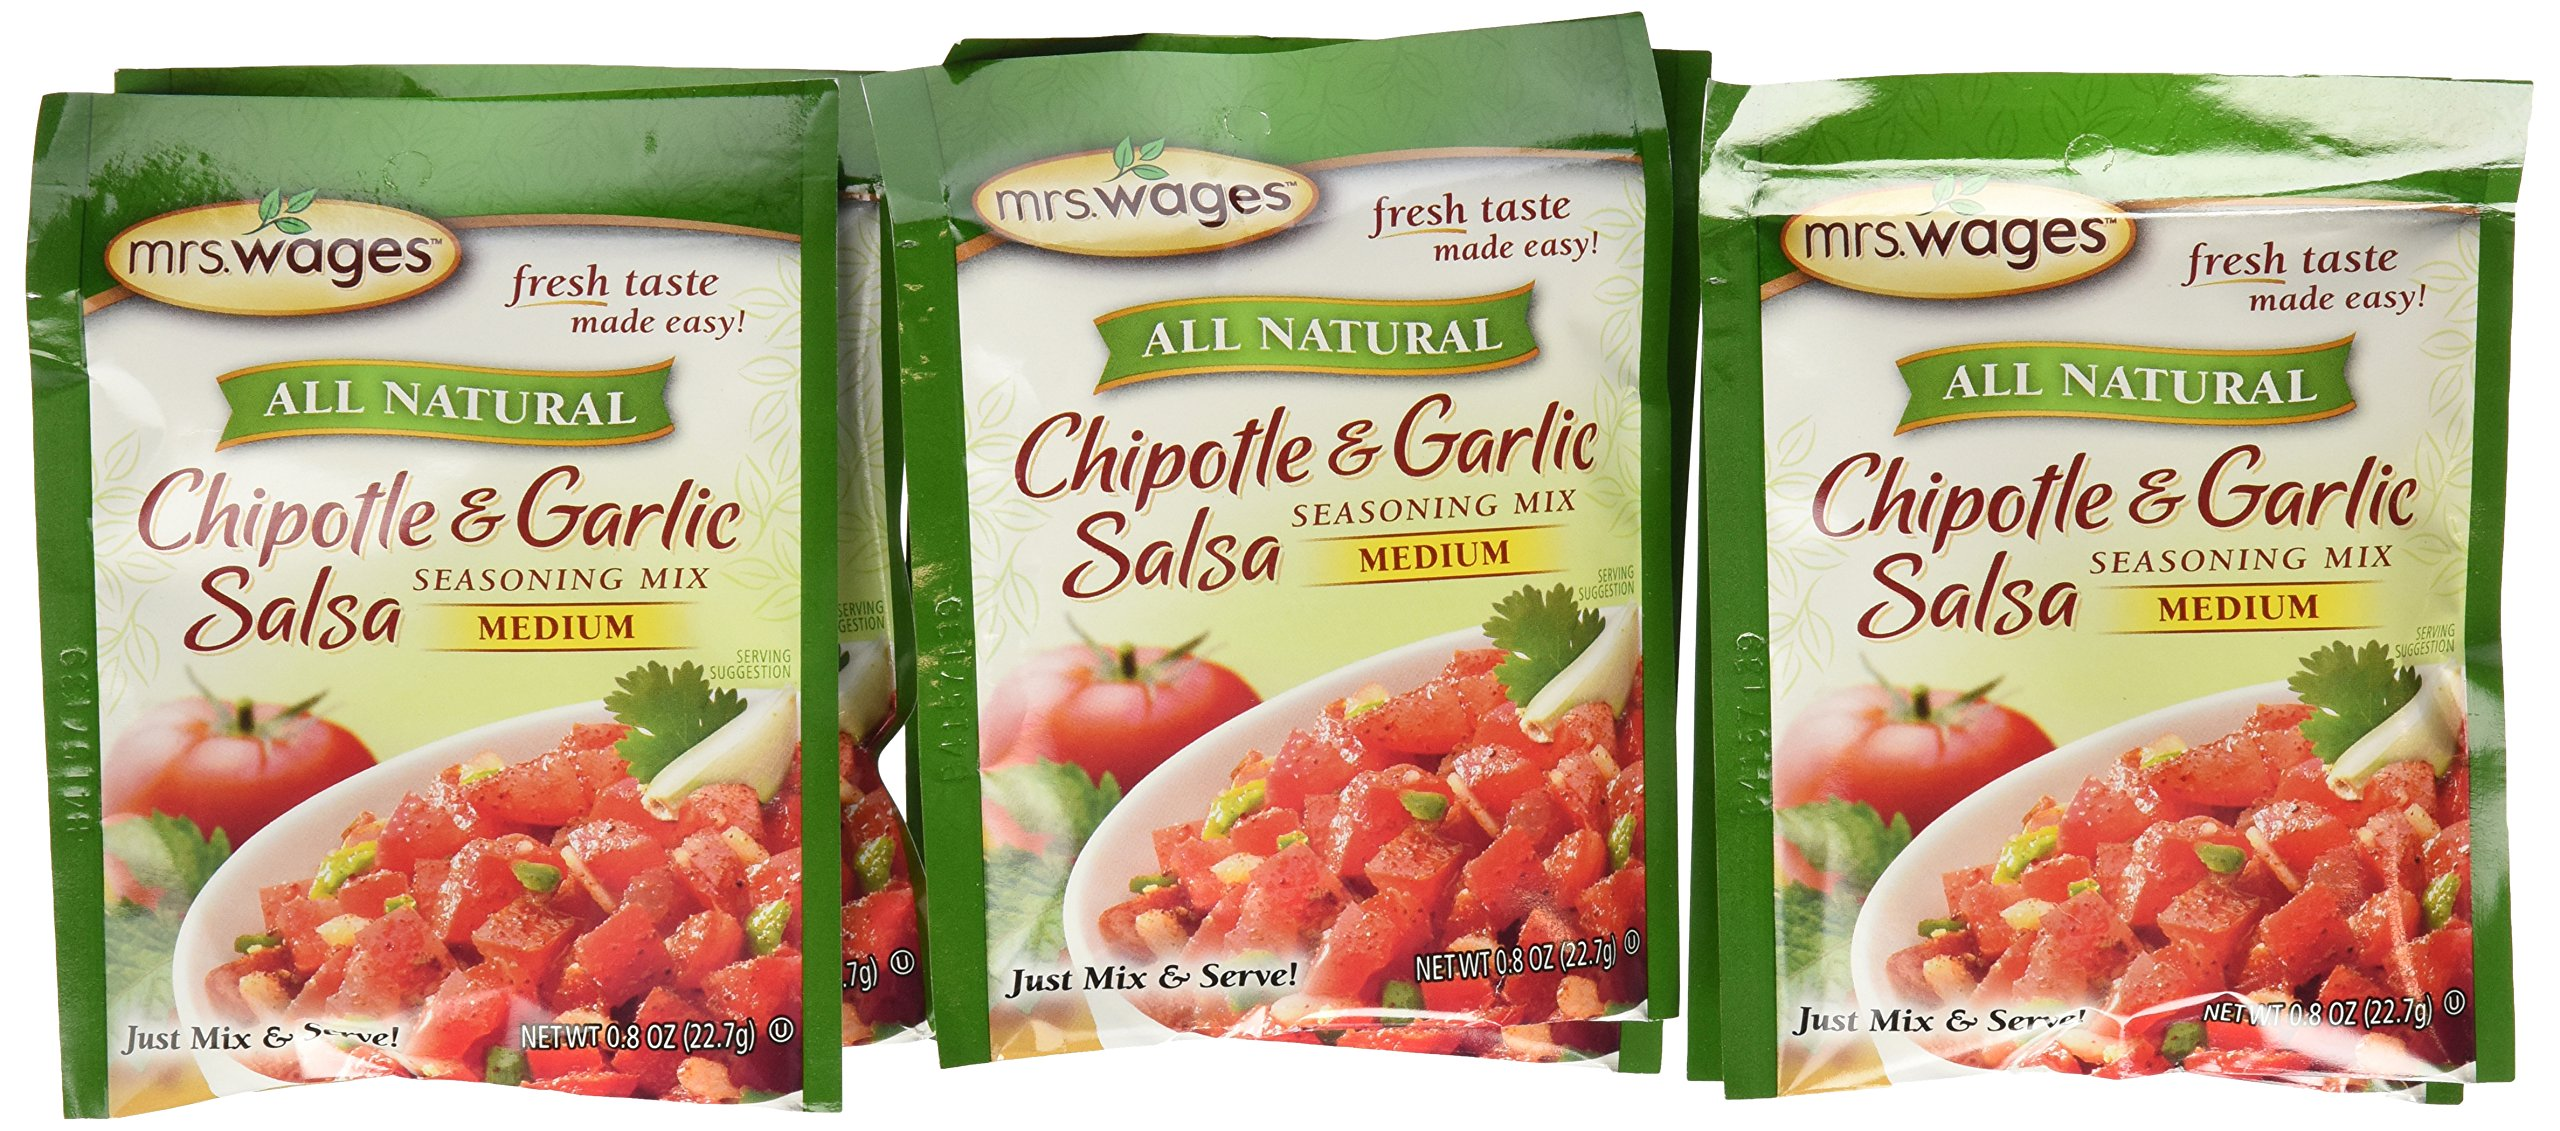 Mrs. Wages Chipotle & Garlic Salsa Mix, 0.8-Ounce Pouches (Pack of 12) by Mrs. Wages